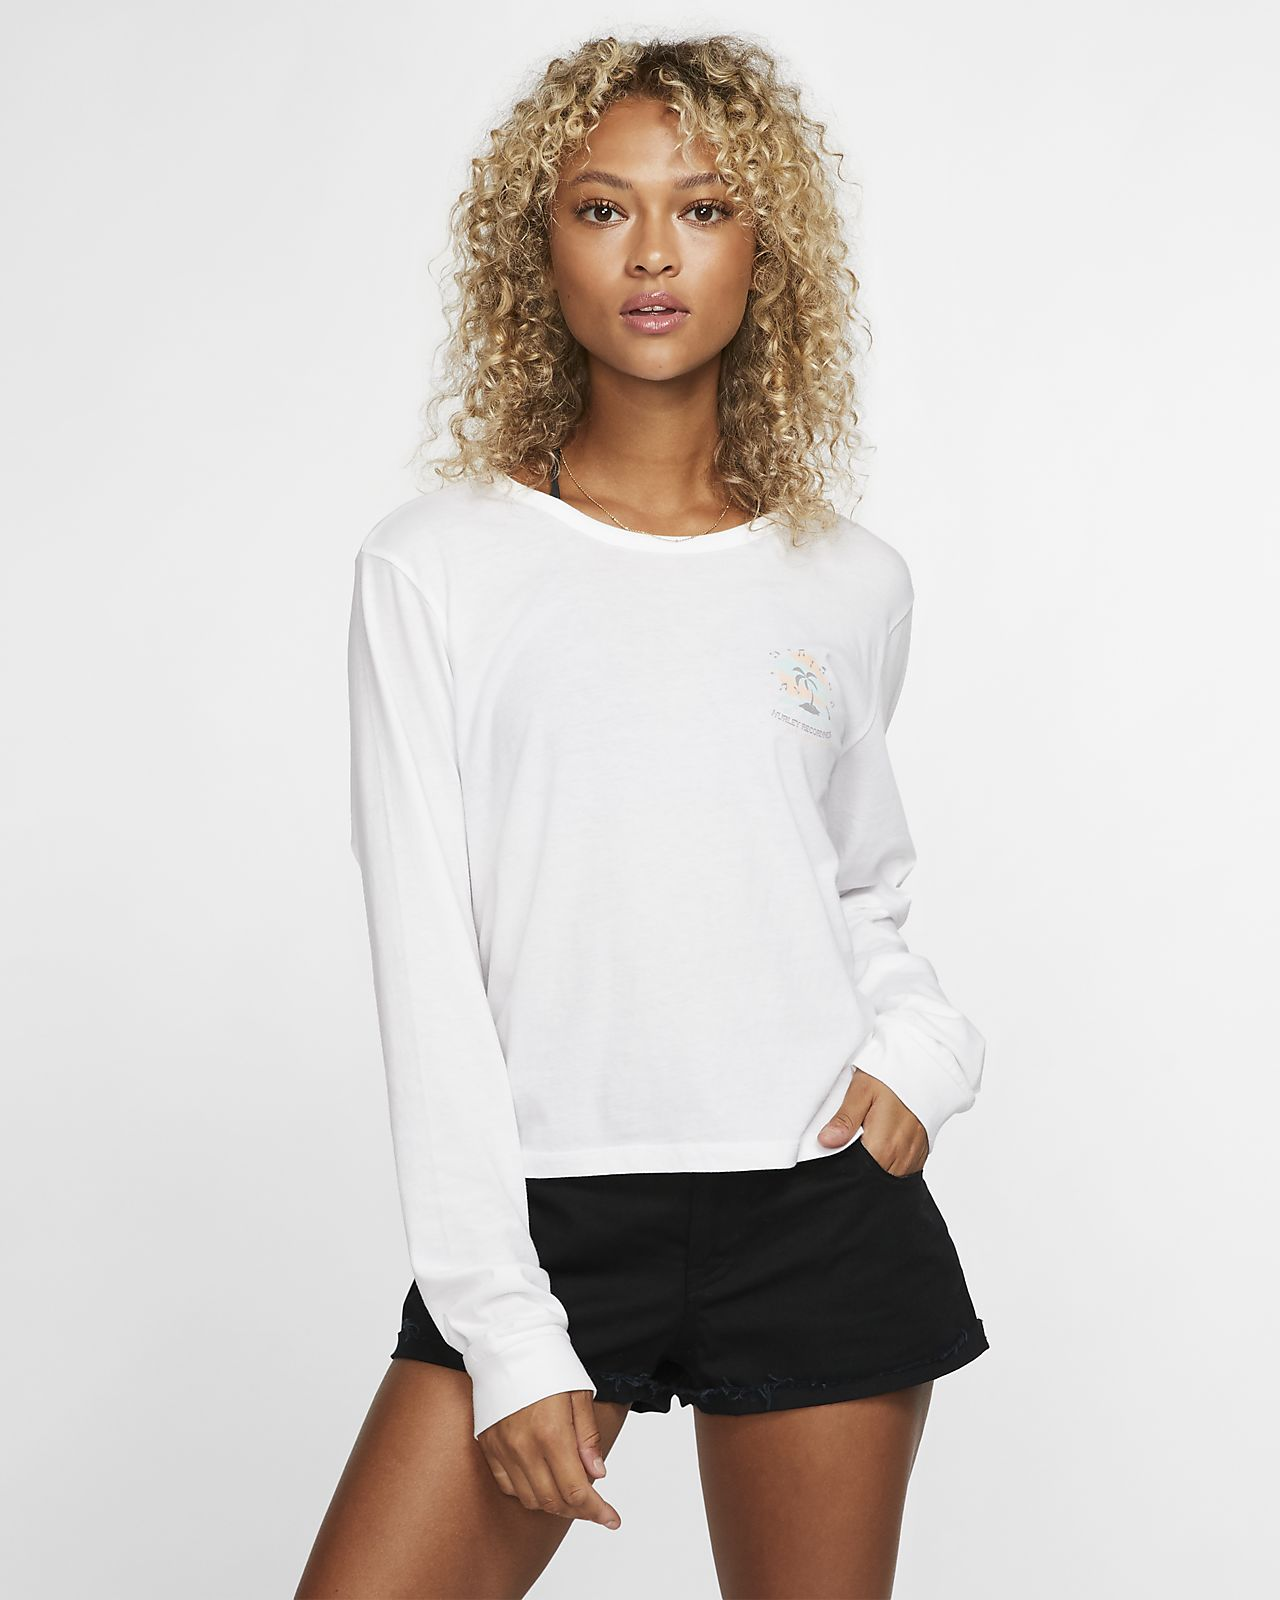 Tee-shirt à manches longues Hurley Record Palms Perfect pour Femme